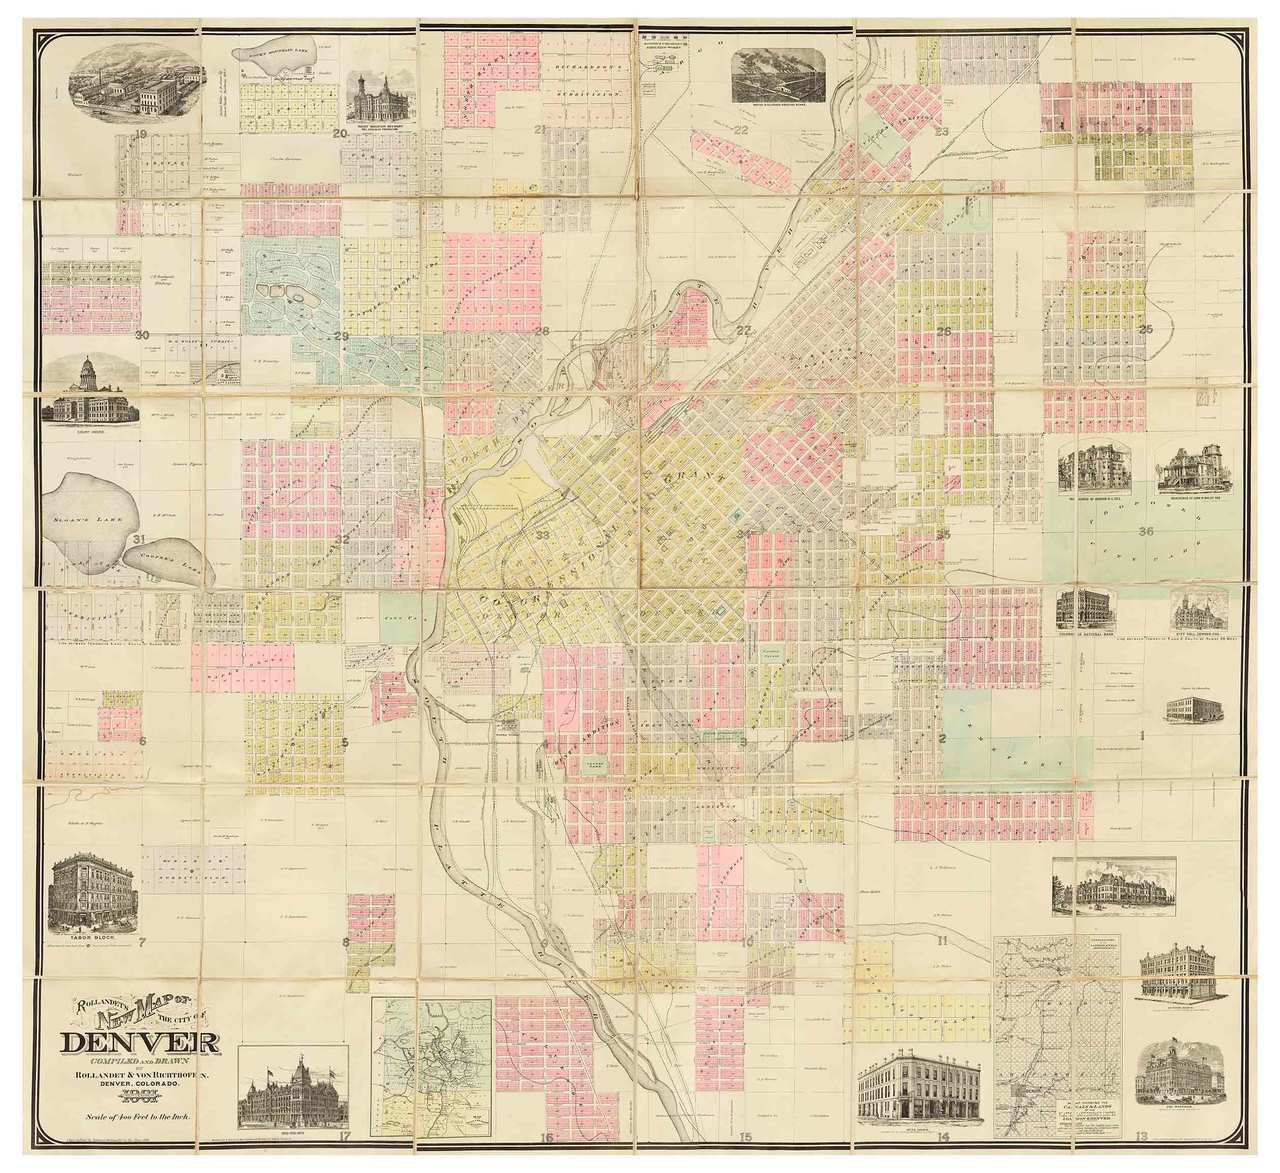 Denver 1881 Rollandet - Old Map Reprint - Colorado Cities on denver neighborhood map, denver city limits map, denver city map online, denver surrounding cities, denver metro area city maps, denver city council map, denver colorado usa map, denver on the map, denver co, university of colorado denver anschutz campus map, denver city park map, denver city map with locations, denver united states map, denver metro map with city boundaries, denver airport map, denver las vegas map, denver castle rock map, denver i-70 colorado exits map, cherry creek denver colorado map, old denver colorado map,